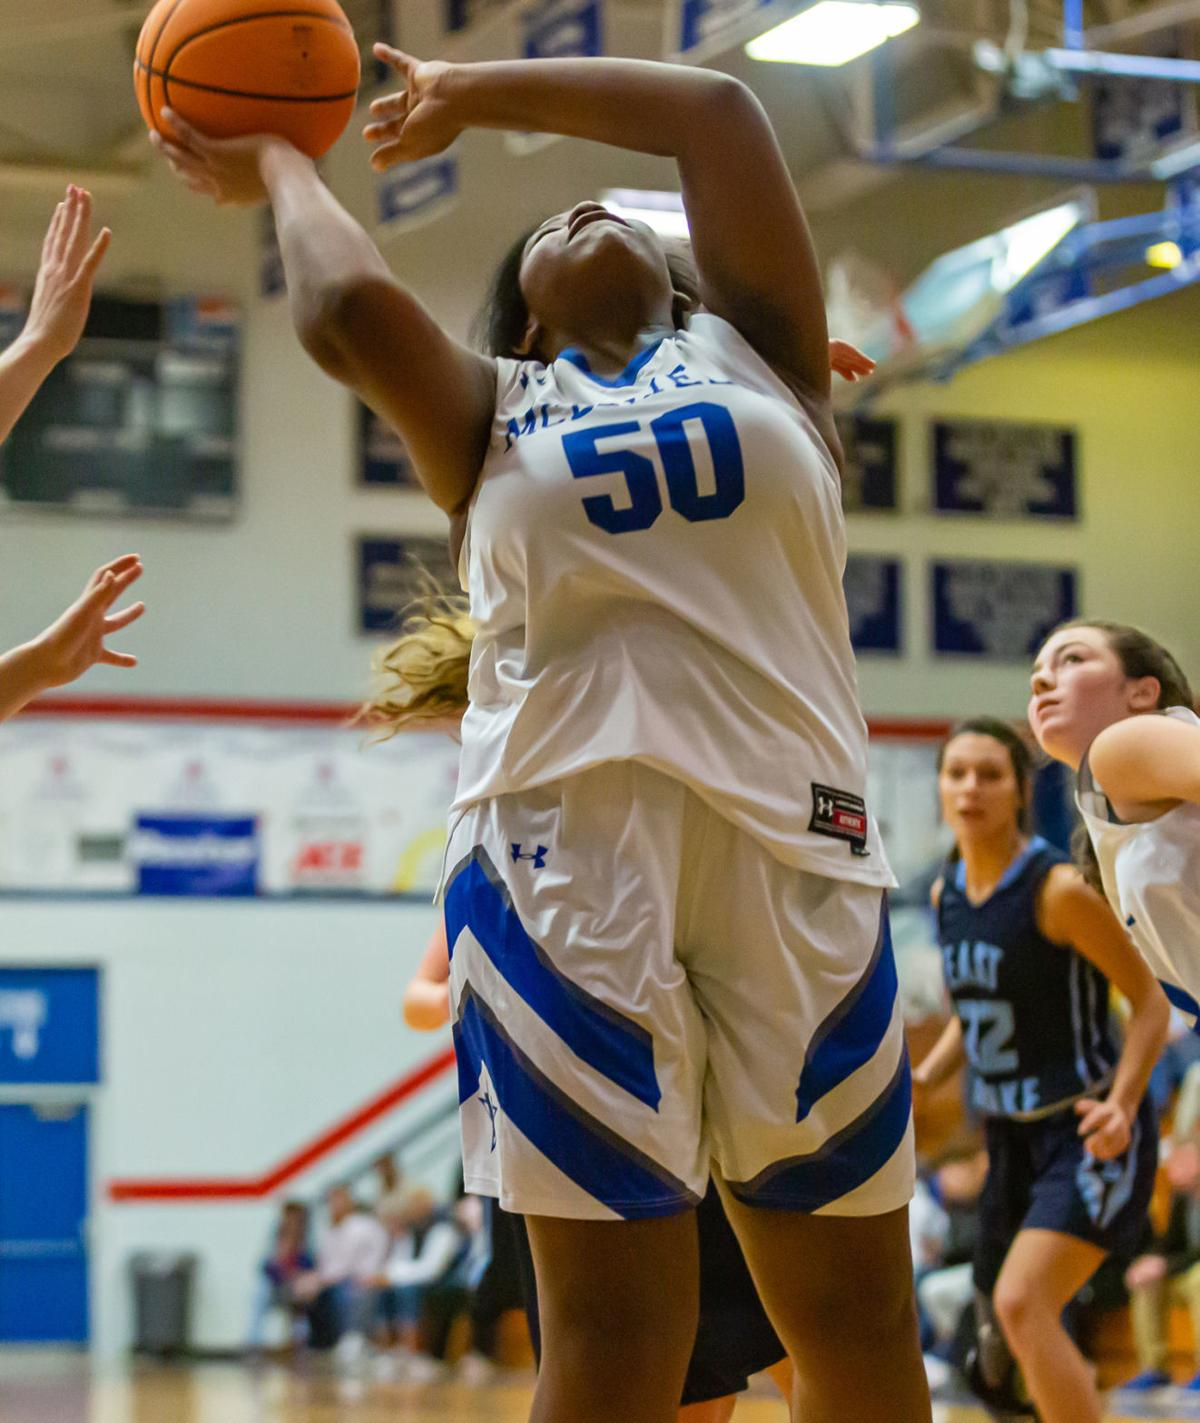 Shooting woes continue for Lady Titans in loss to Cavs